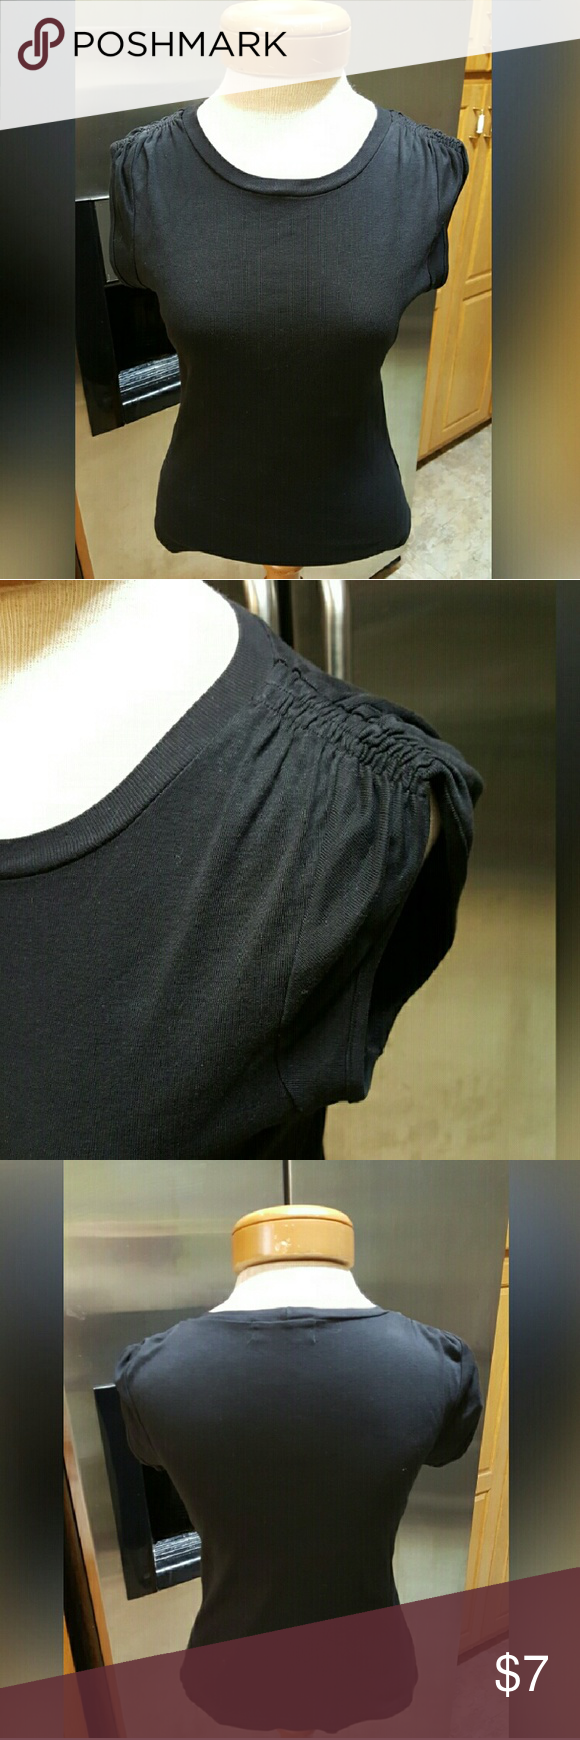 Juicy Couture Top Size Large Juicy Couture Top Size Large 100% cotton, solid black, gathered sleeves.  Feel free to ask any questions before purchasing. Thank you for shopping my closet! Juicy Couture  Tops